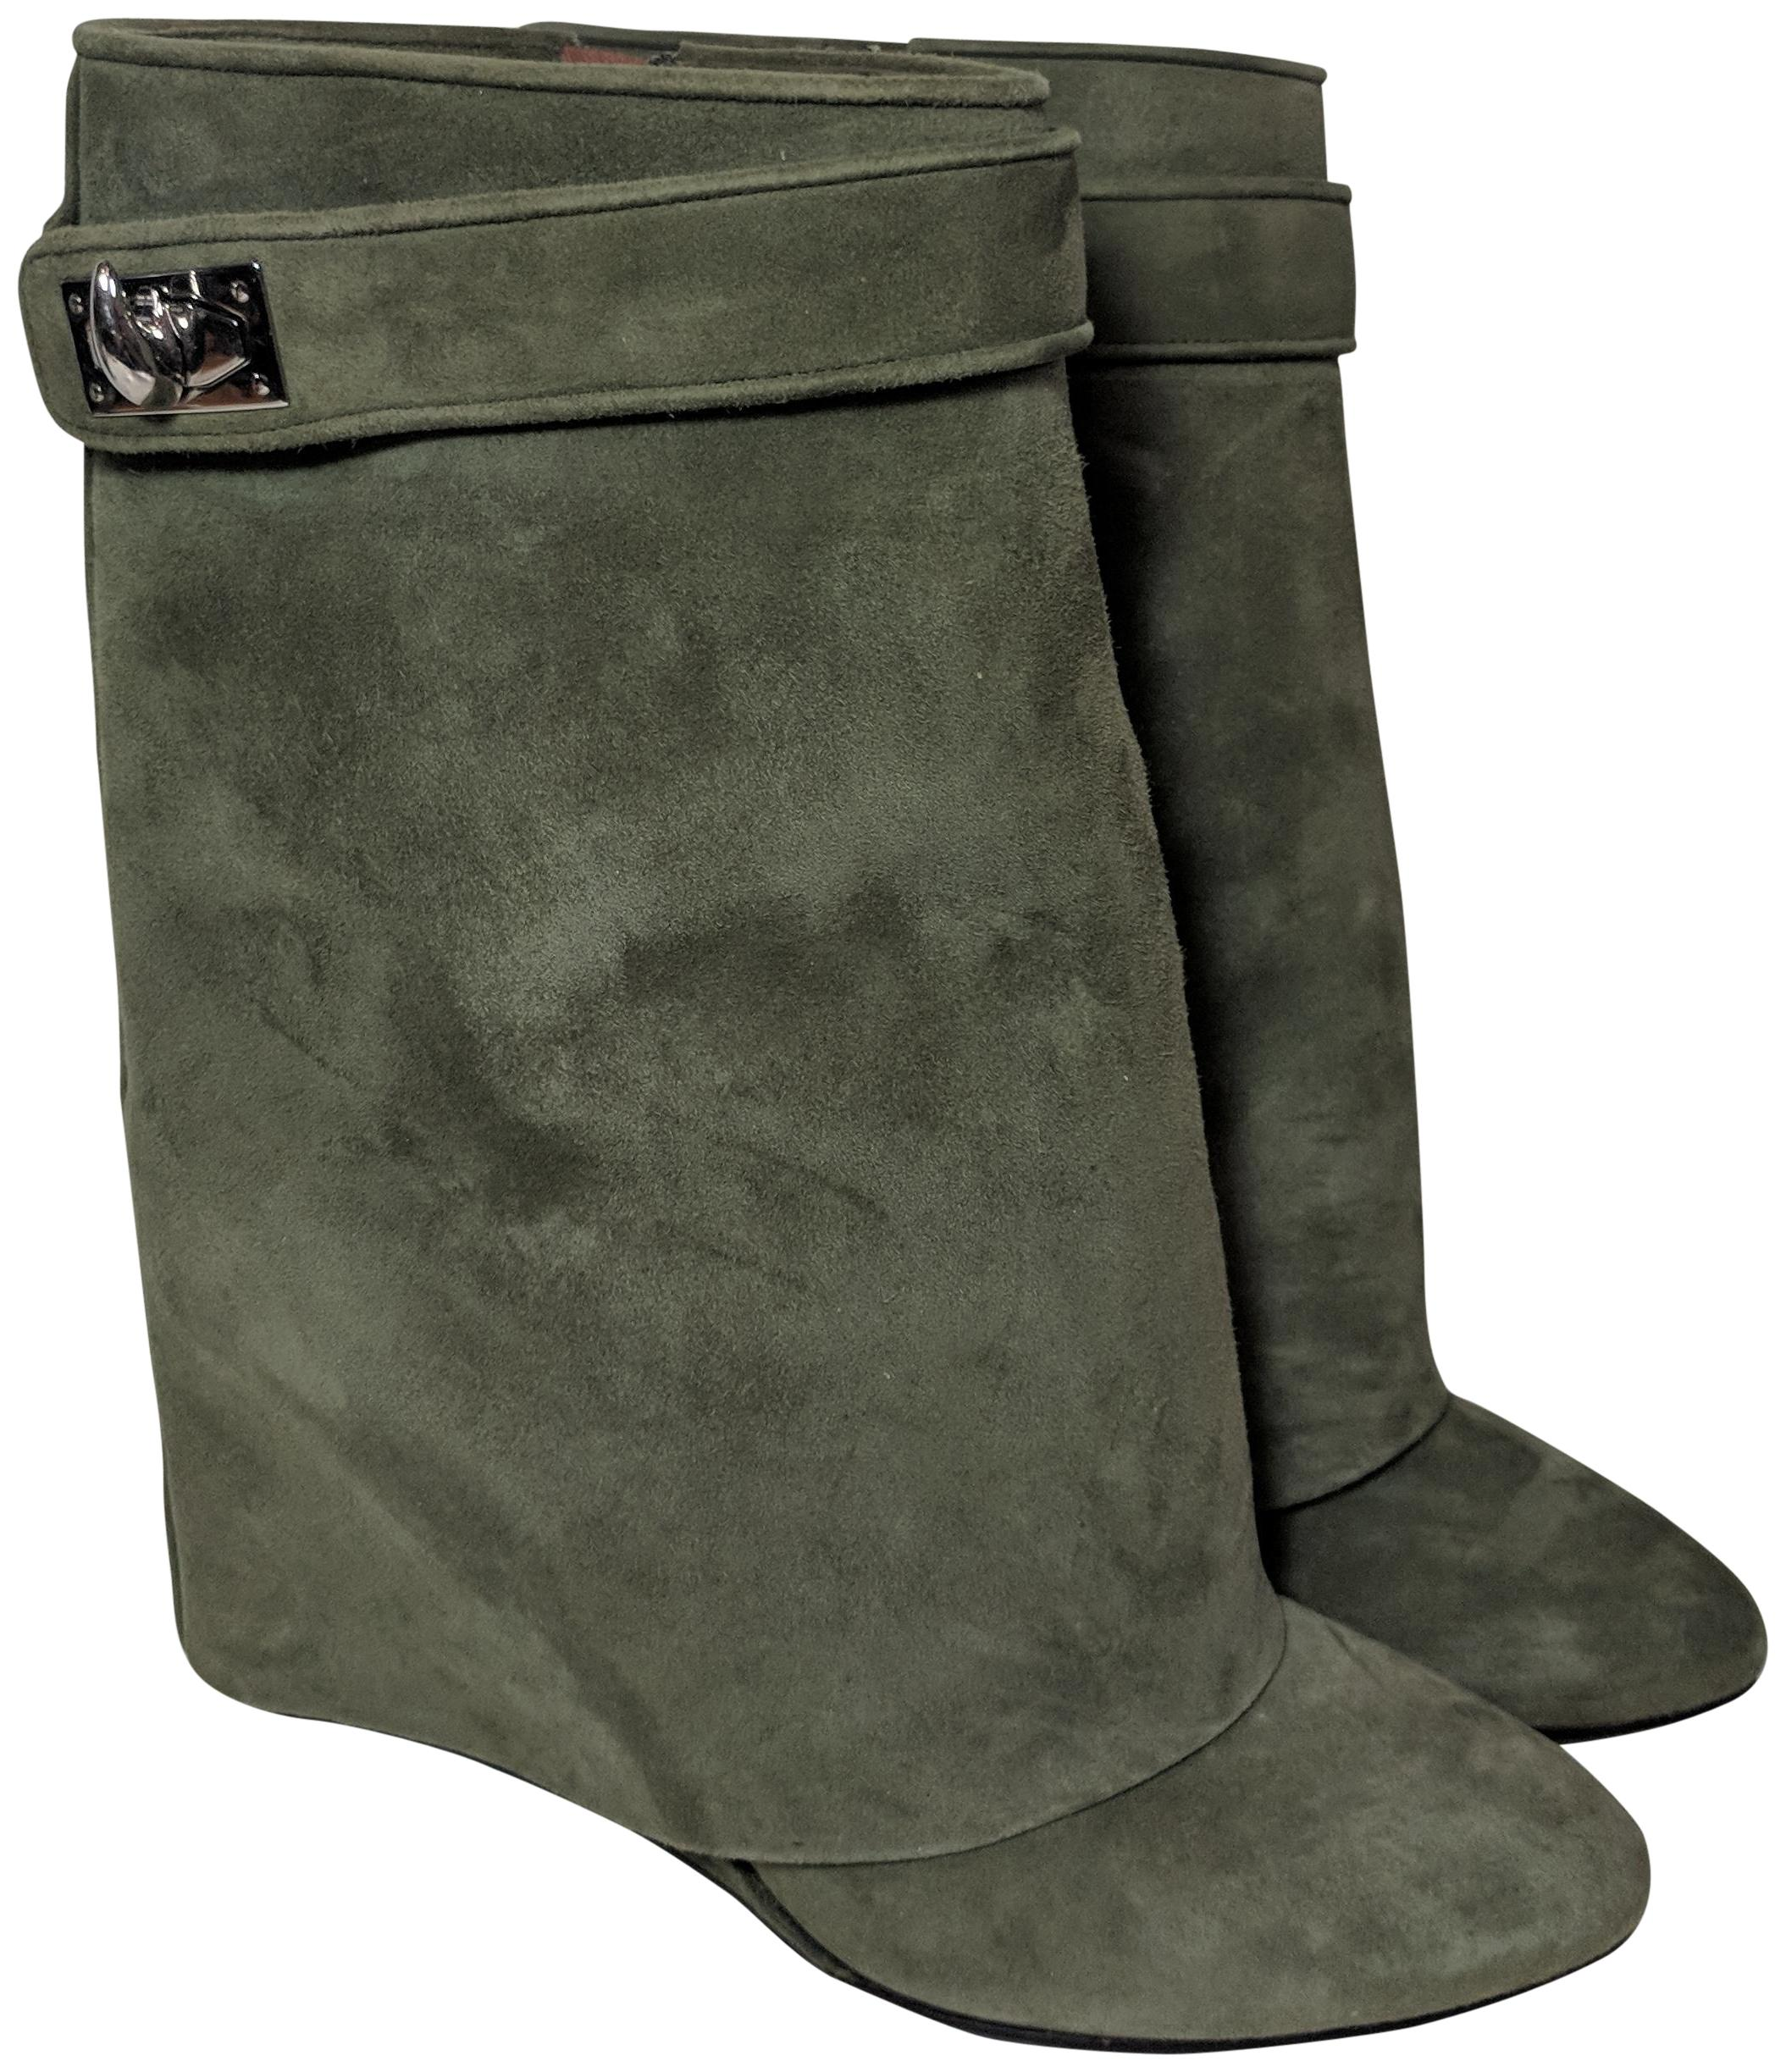 Givenchy Olive Green Suede Shark Lock Ankle Boots/Booties Size US 8 Narrow (Aa, N)